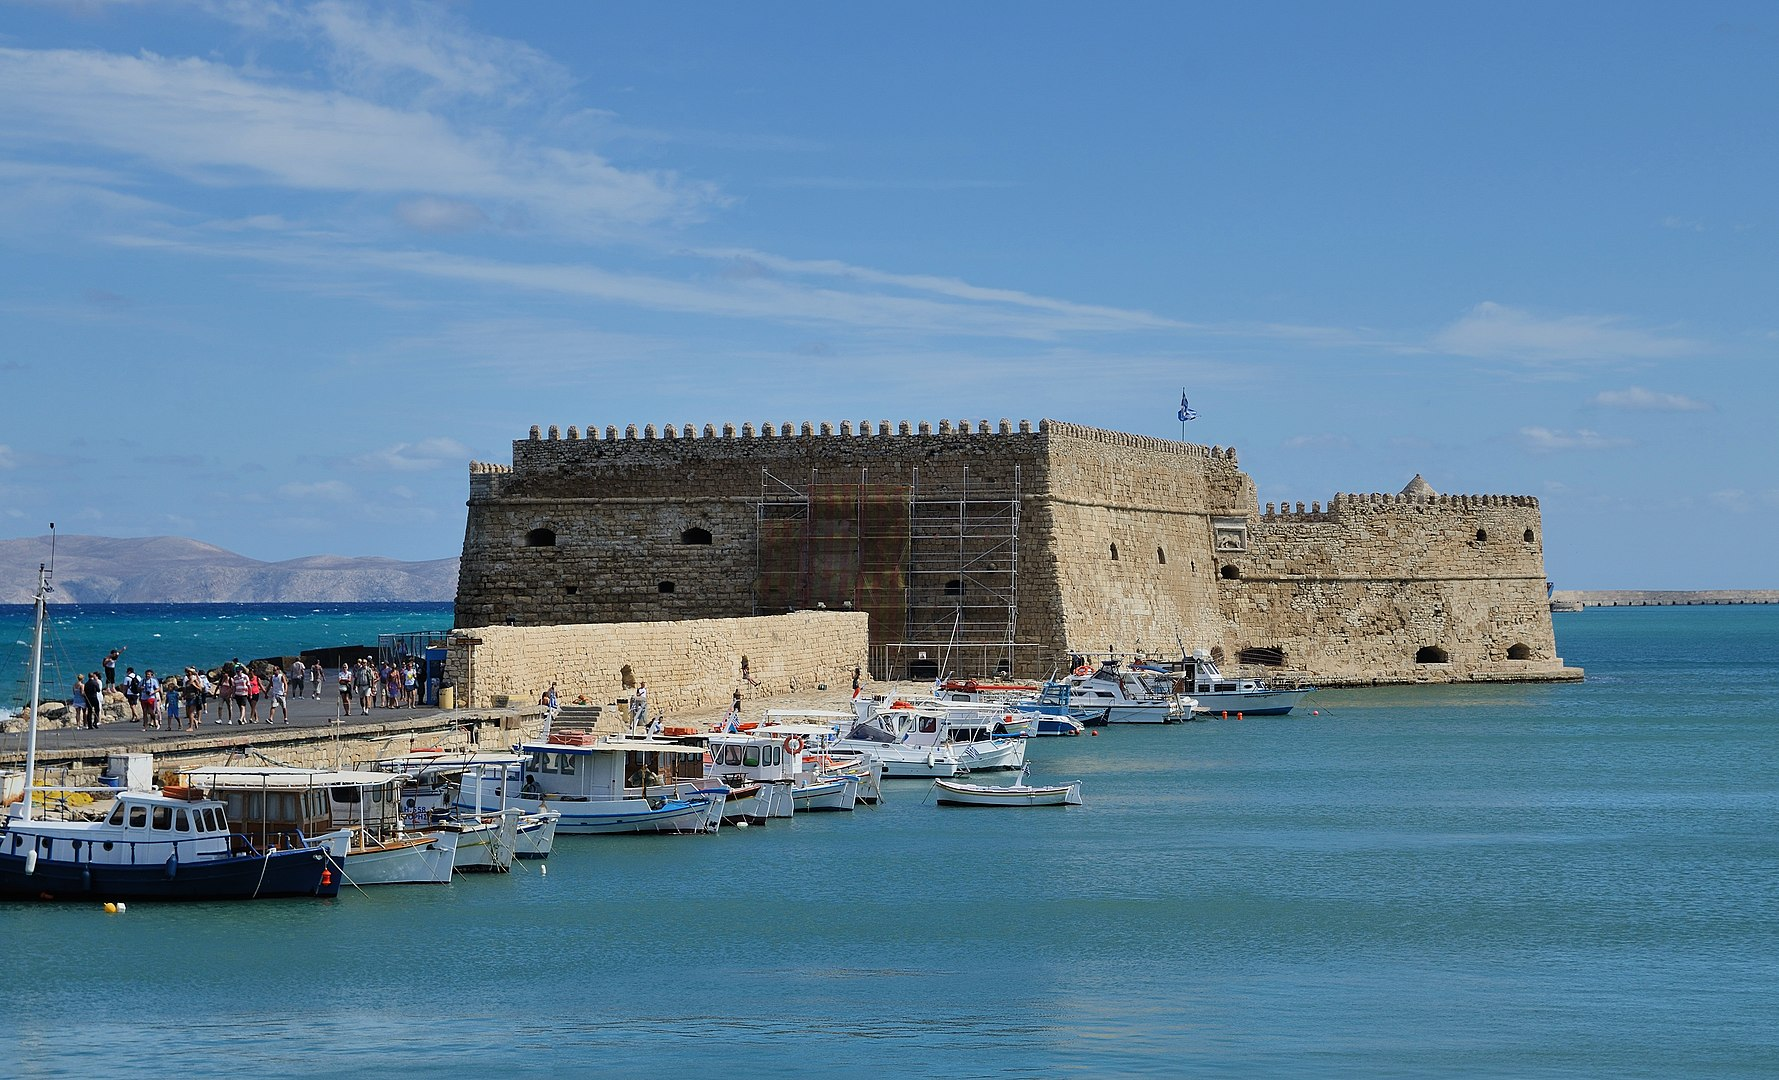 The Venetian fortress of Koules/Castello a Mare (1523–1540) guards the inner harbor of Heraklion